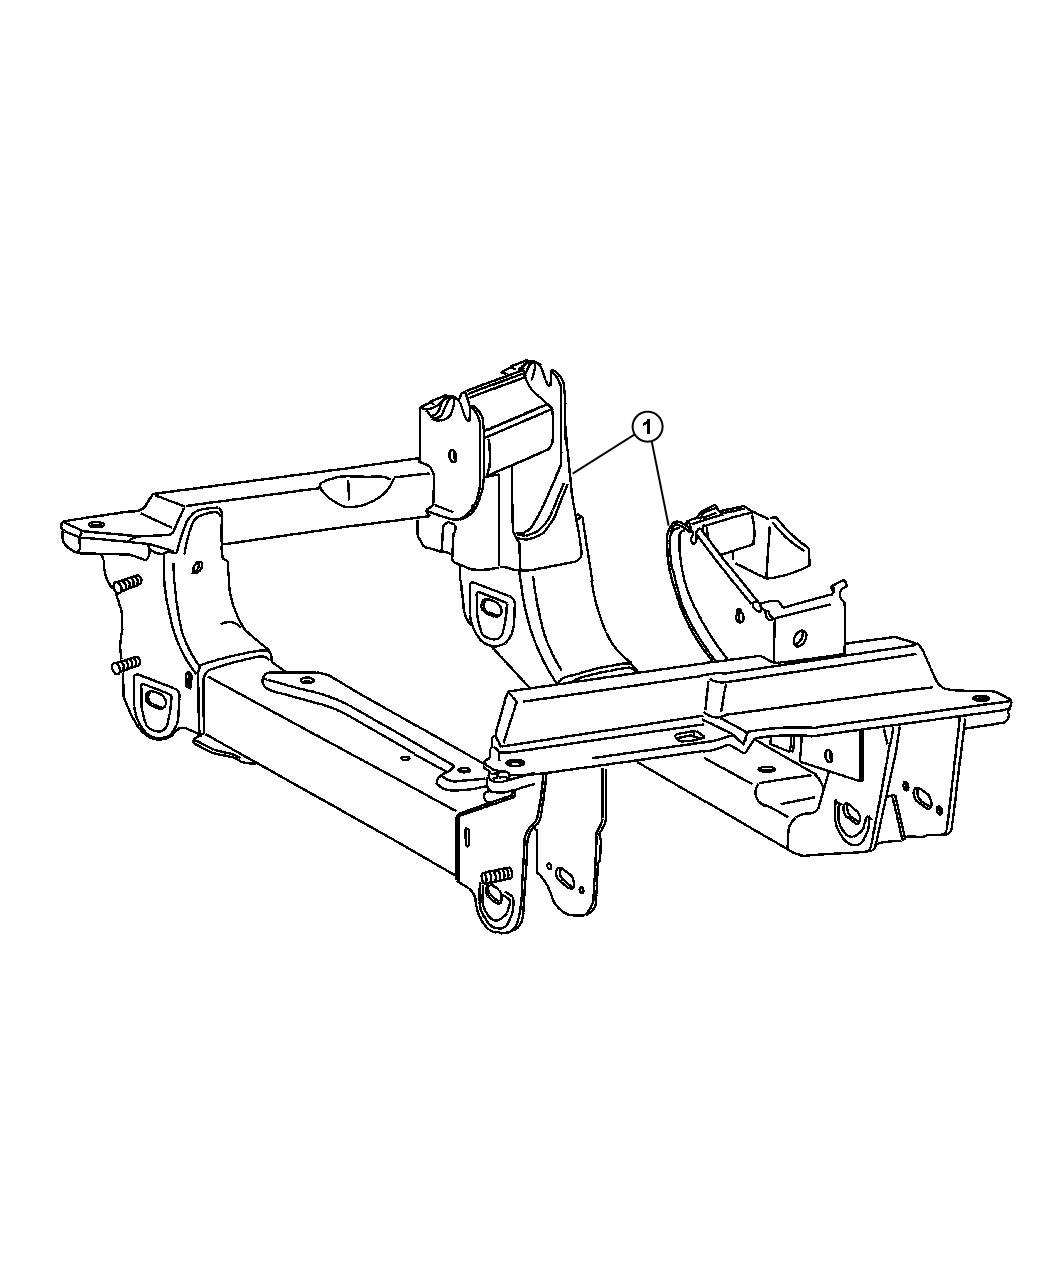 Jeep Liberty Cradle Crossmember Front Suspension